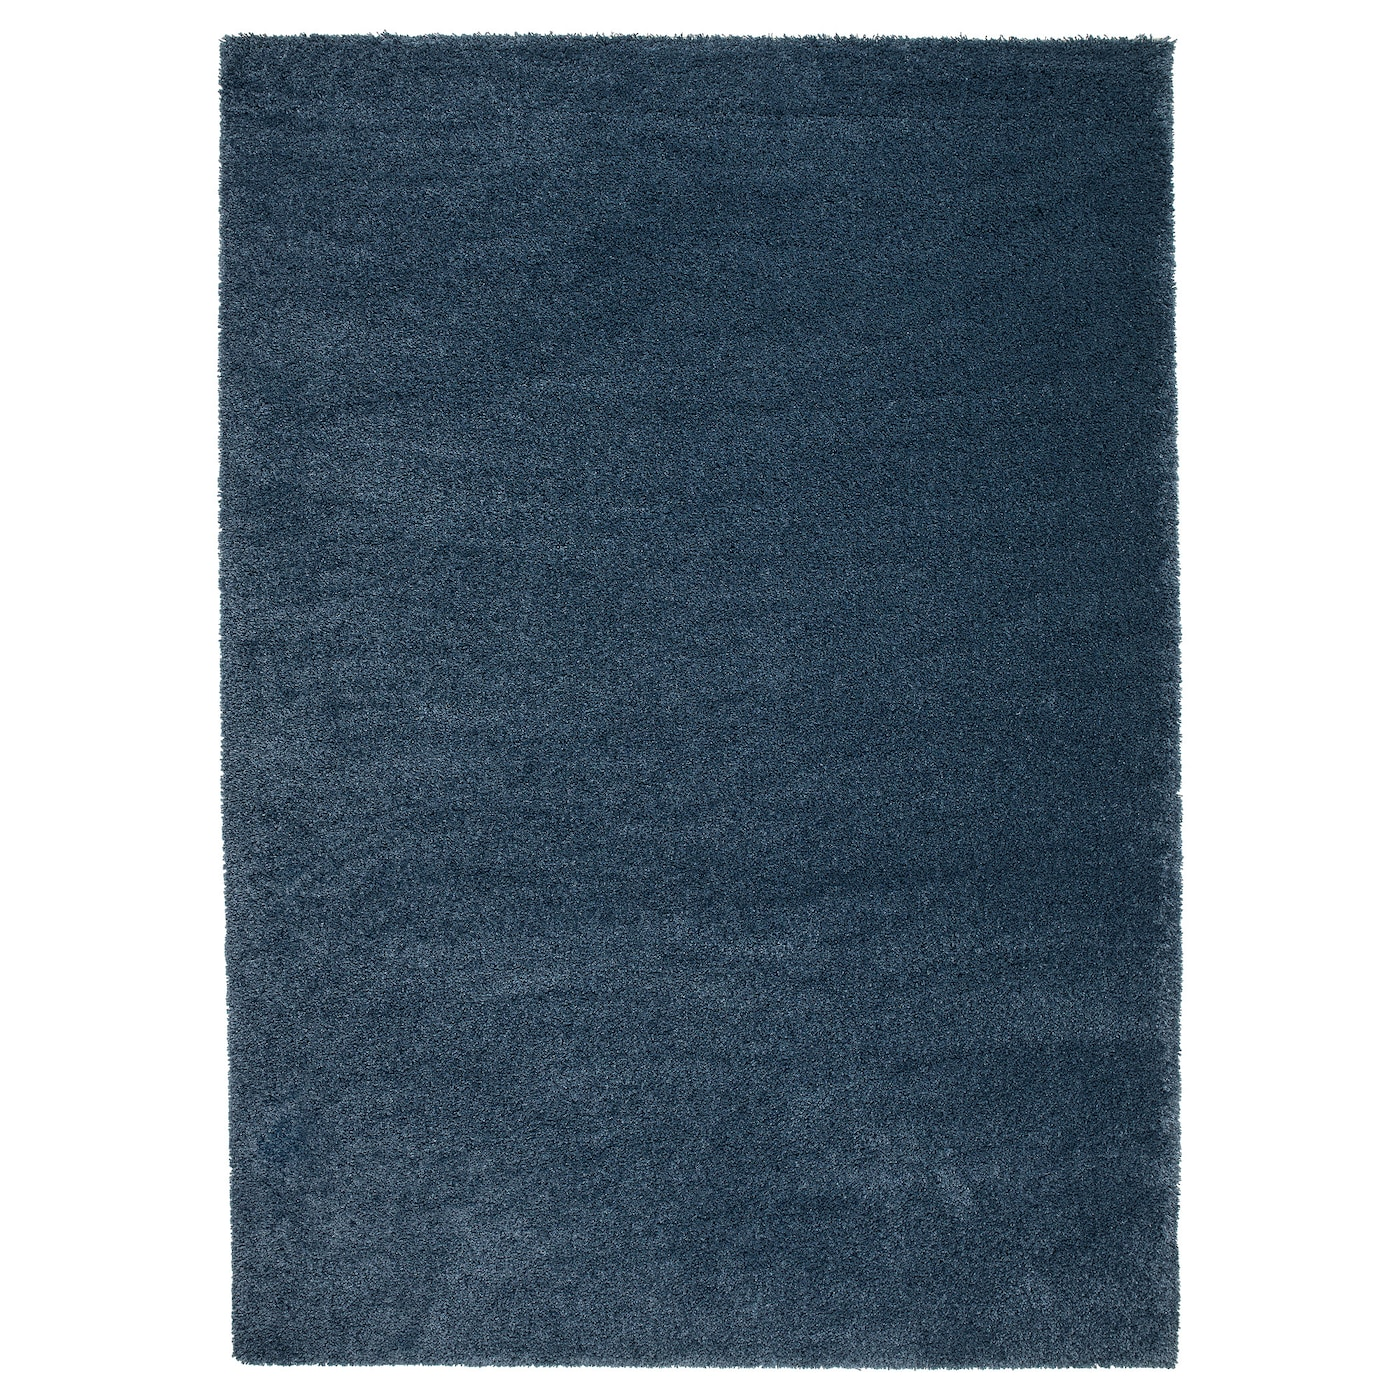 dum tapis poils hauts bleu fonc 170 x 240 cm ikea. Black Bedroom Furniture Sets. Home Design Ideas